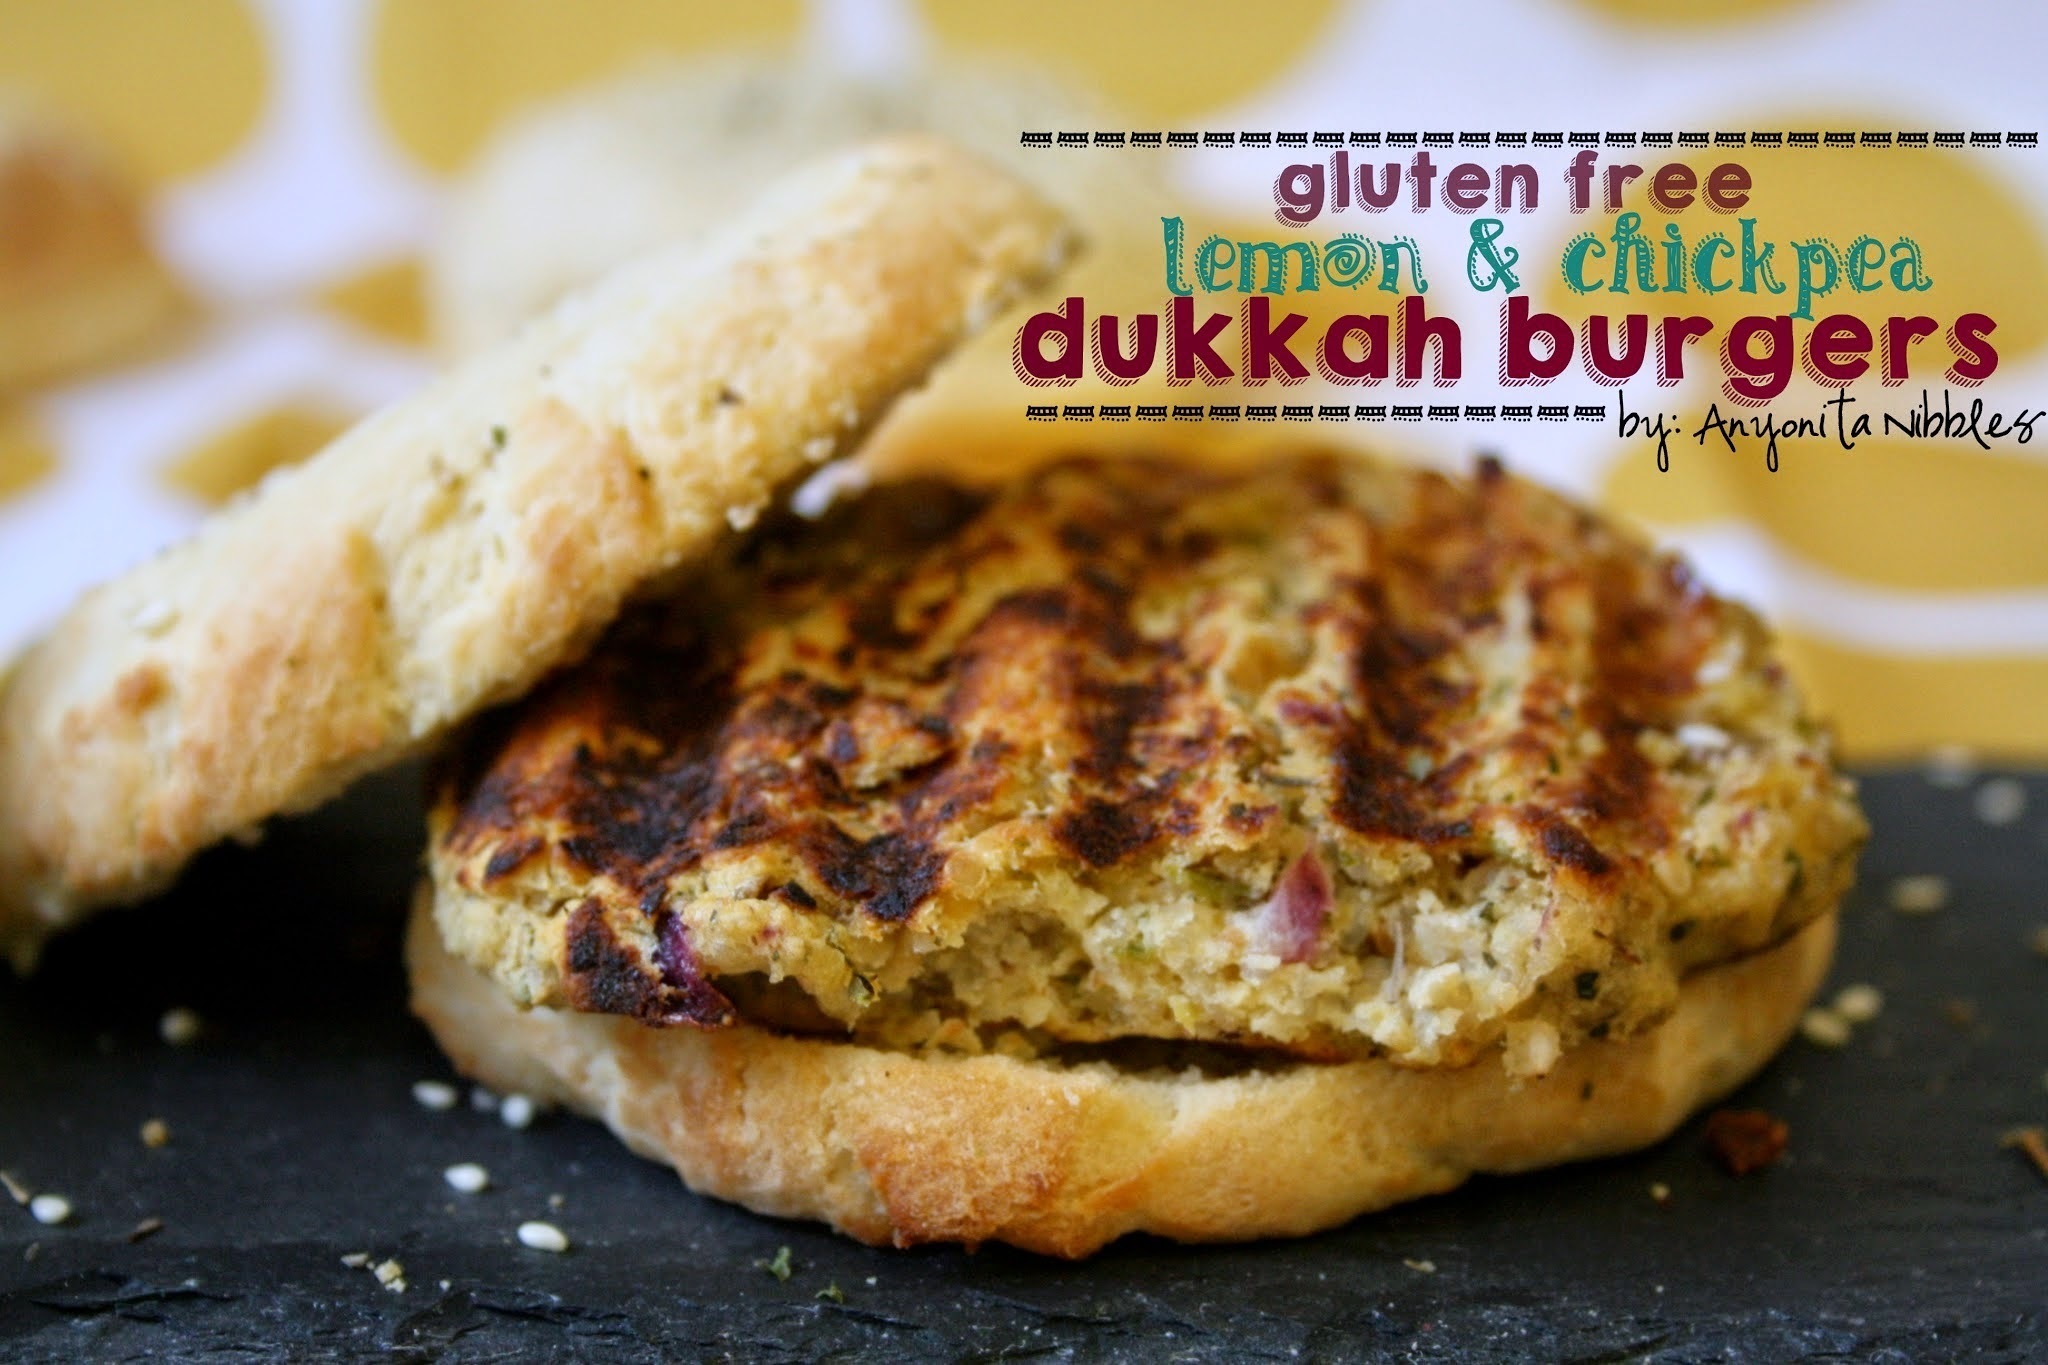 Vegetarian Lemon & Chickpea Dukkah Burgers on Best Ever Gluten Free Burger Buns